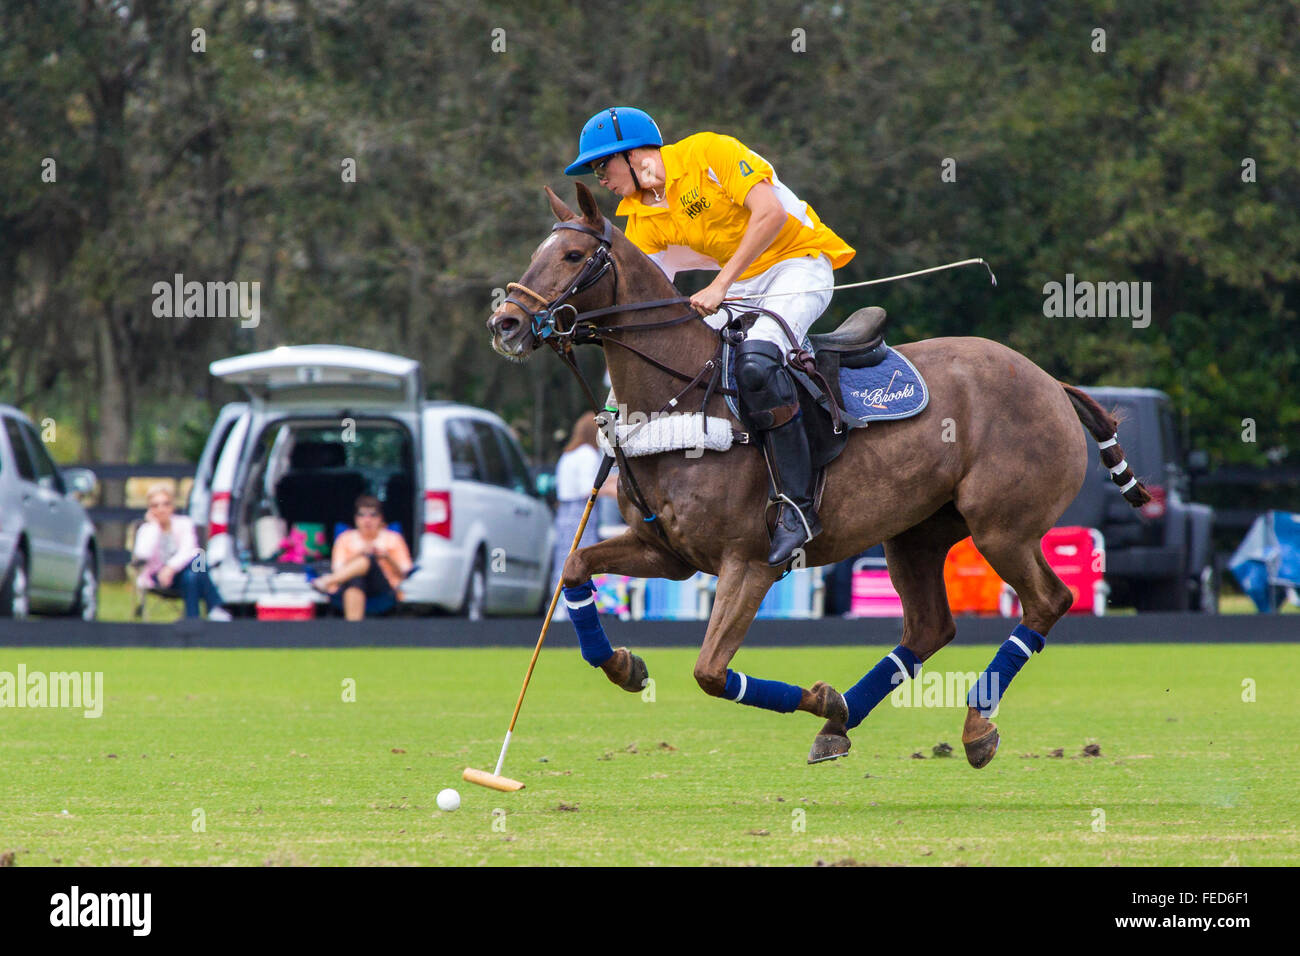 Polo match at Sarasota Polo Club at Lakewood Ranch in Sarasota Florida - Stock Image